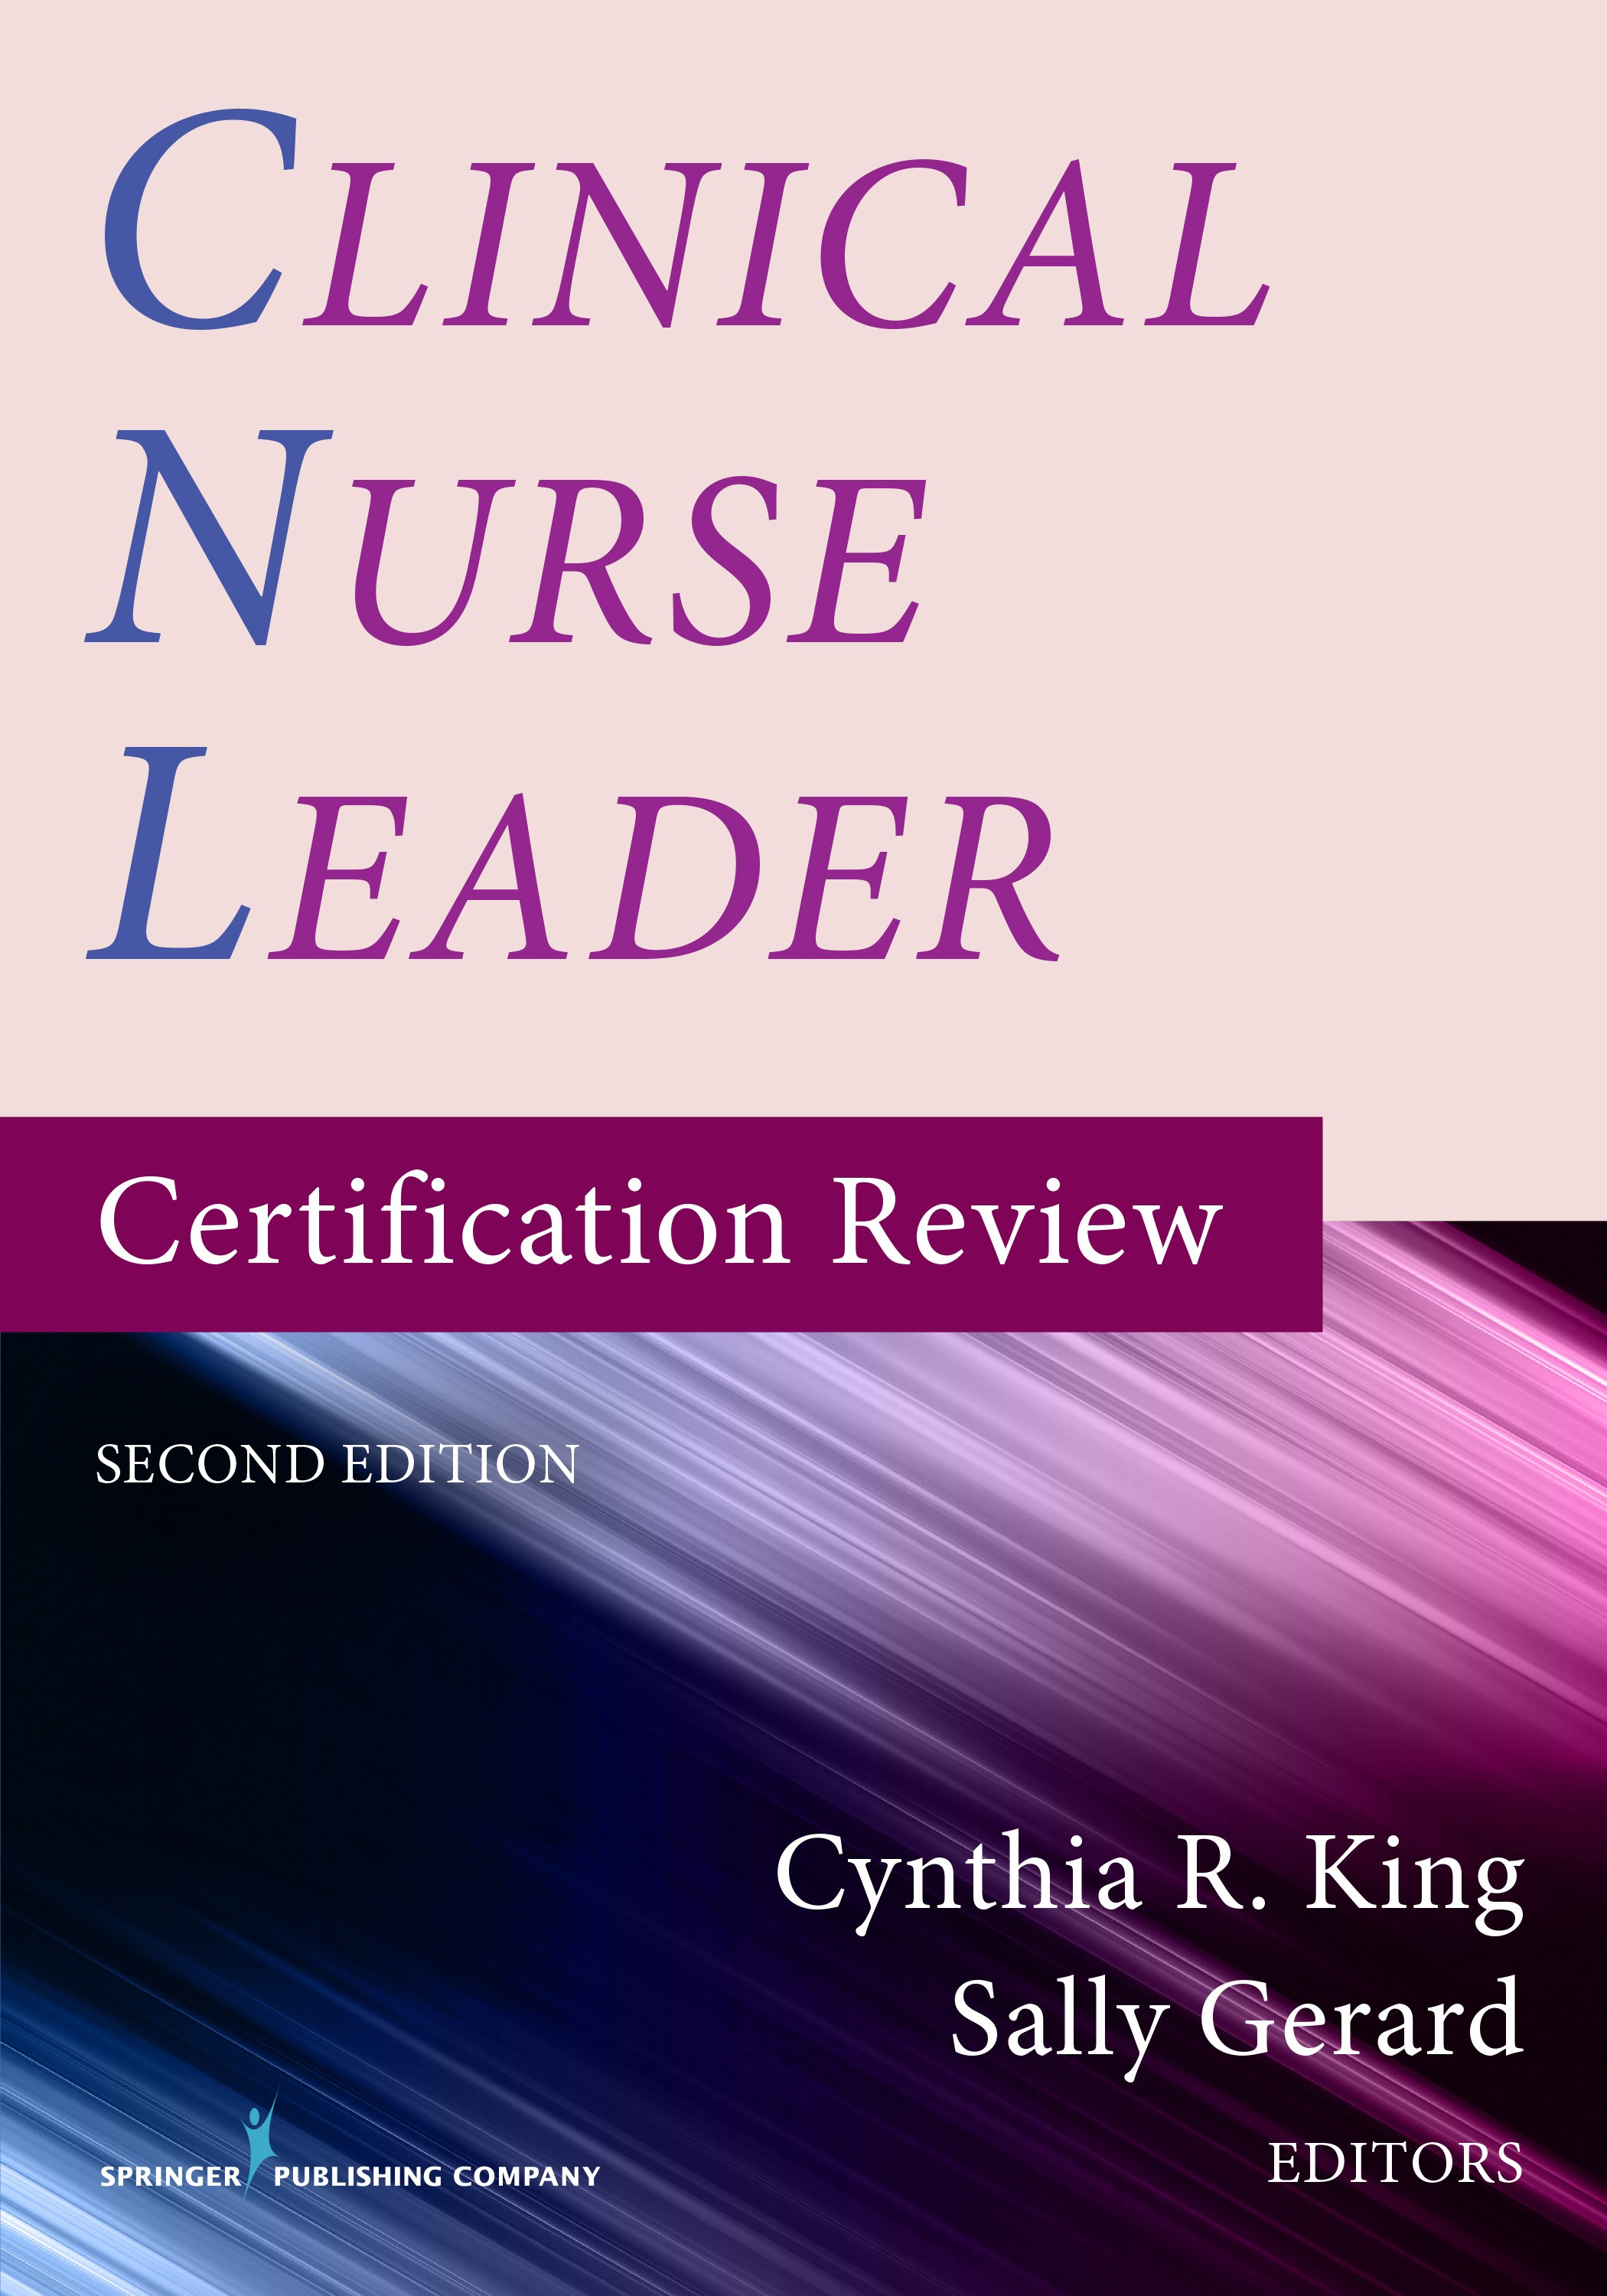 Clinical Nurse Leader, 2nd ed.- Certification Review